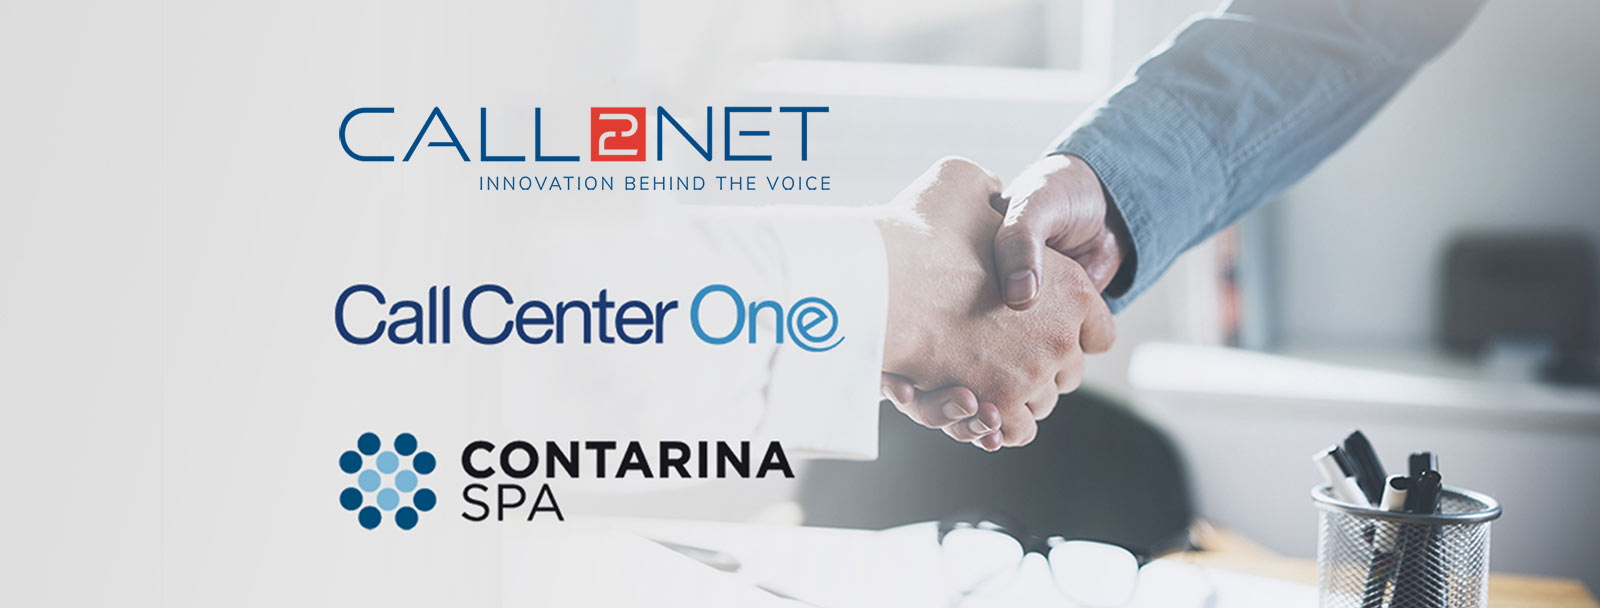 L'RTI Call Center One - Call2Net vince la gara di appalto di Contarina